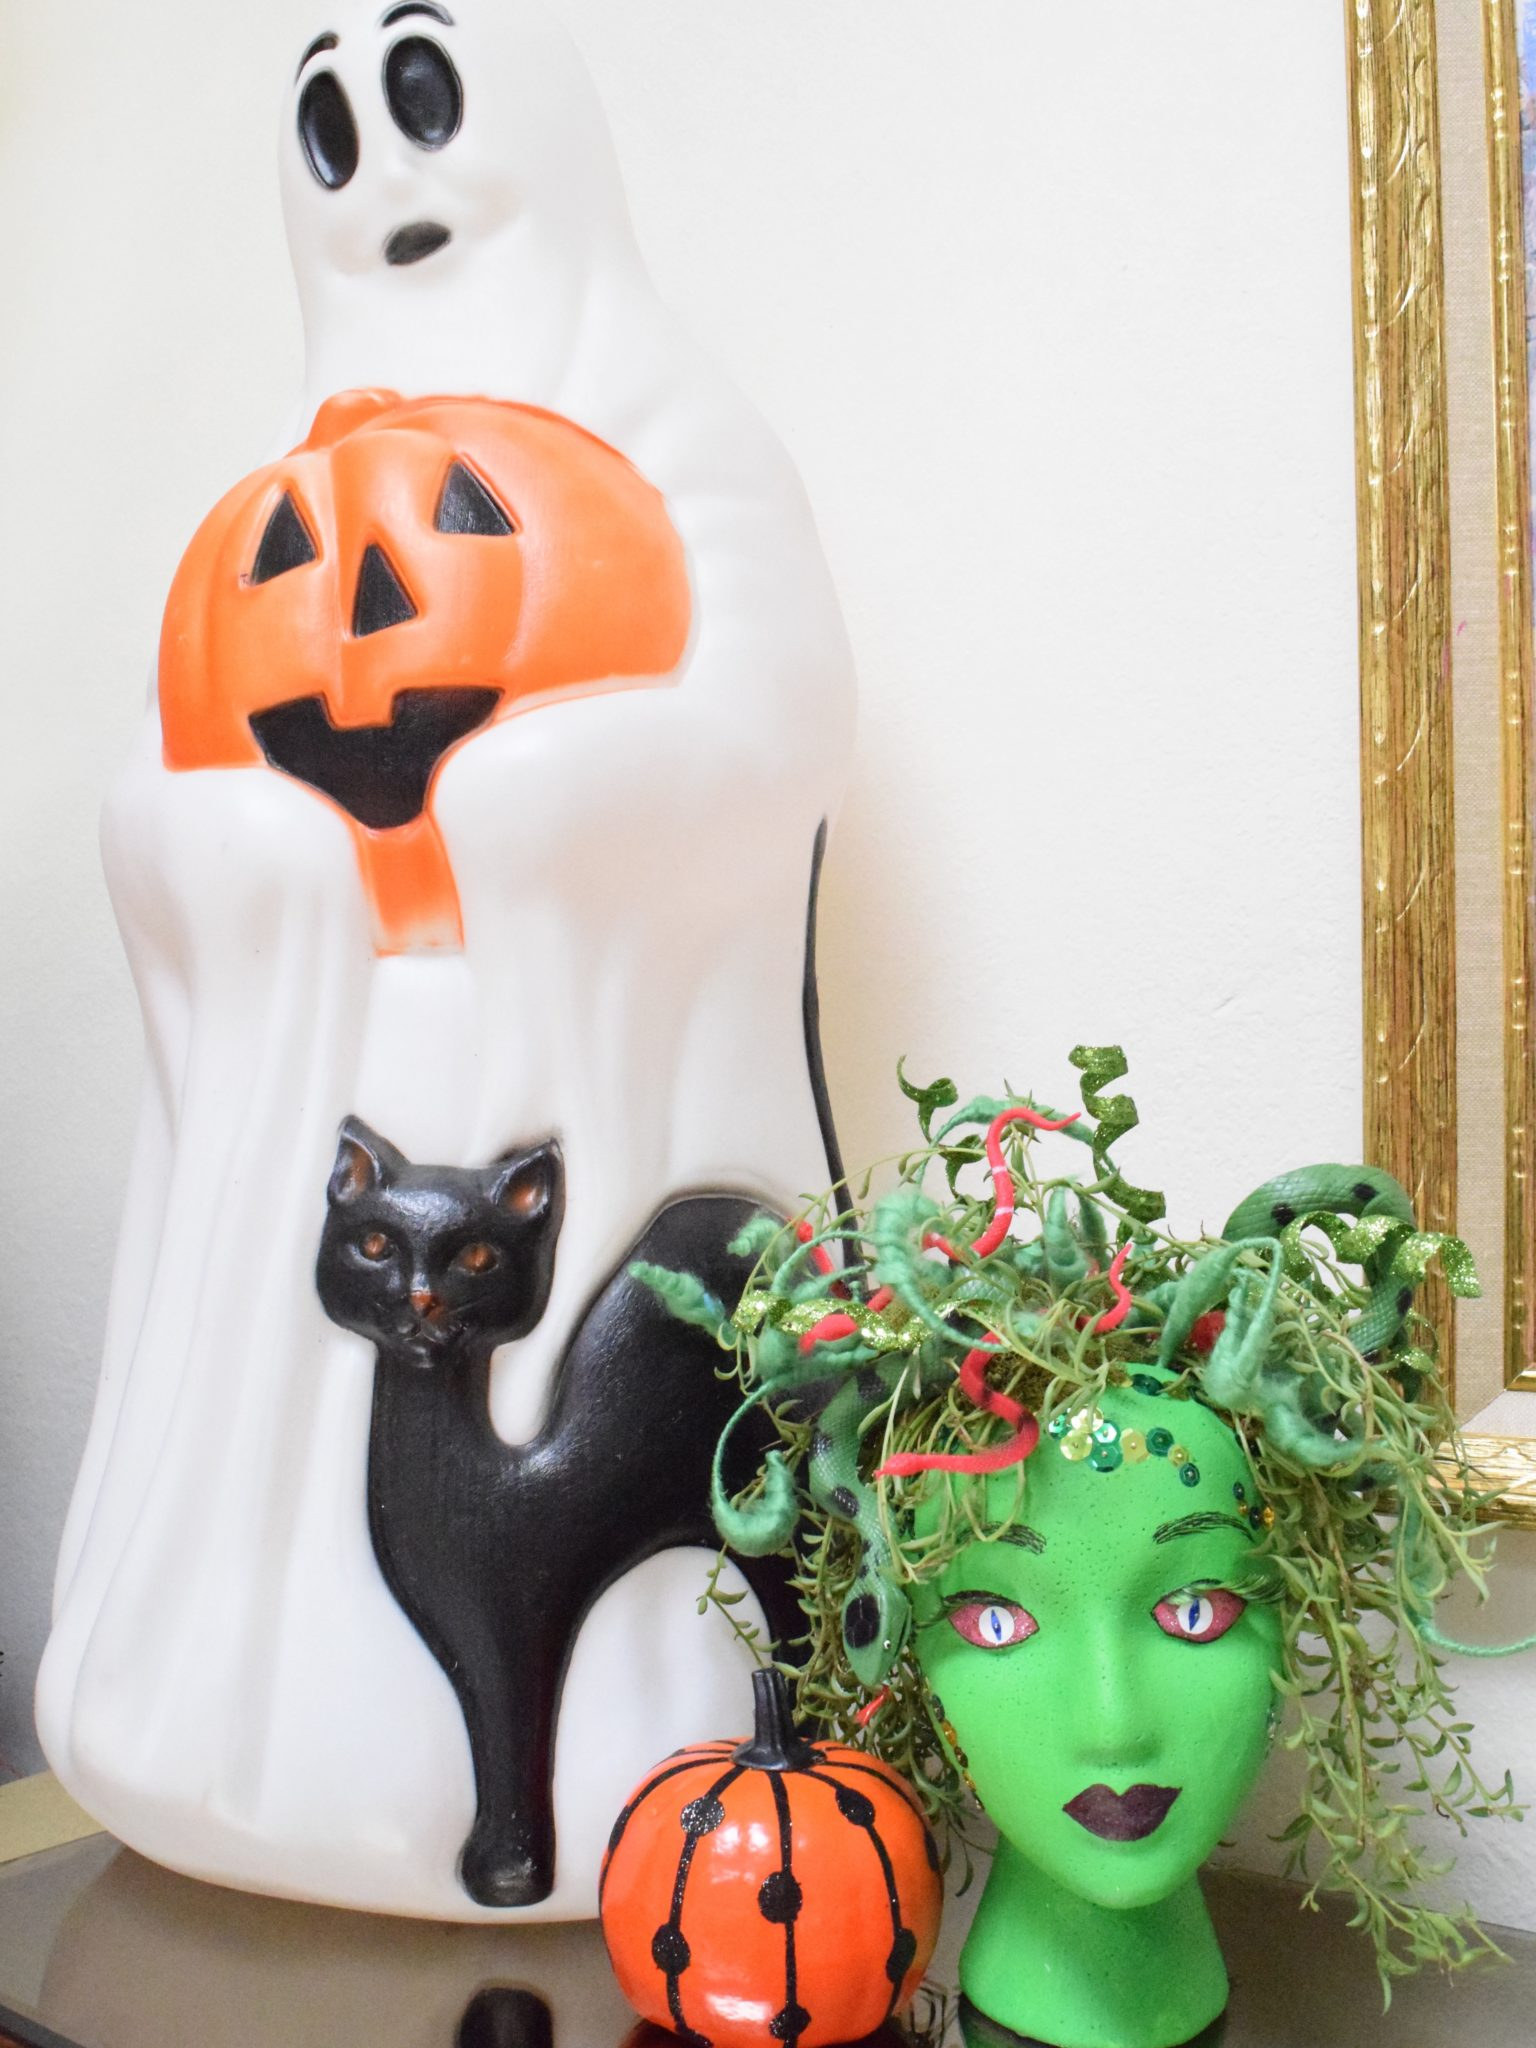 Halloween Crafts with the Kids - DIY Monster Planters Jennifer Perkins #halloweencrafts #halloweenkidscrafts #halloweendecor #diyhalloweendecor